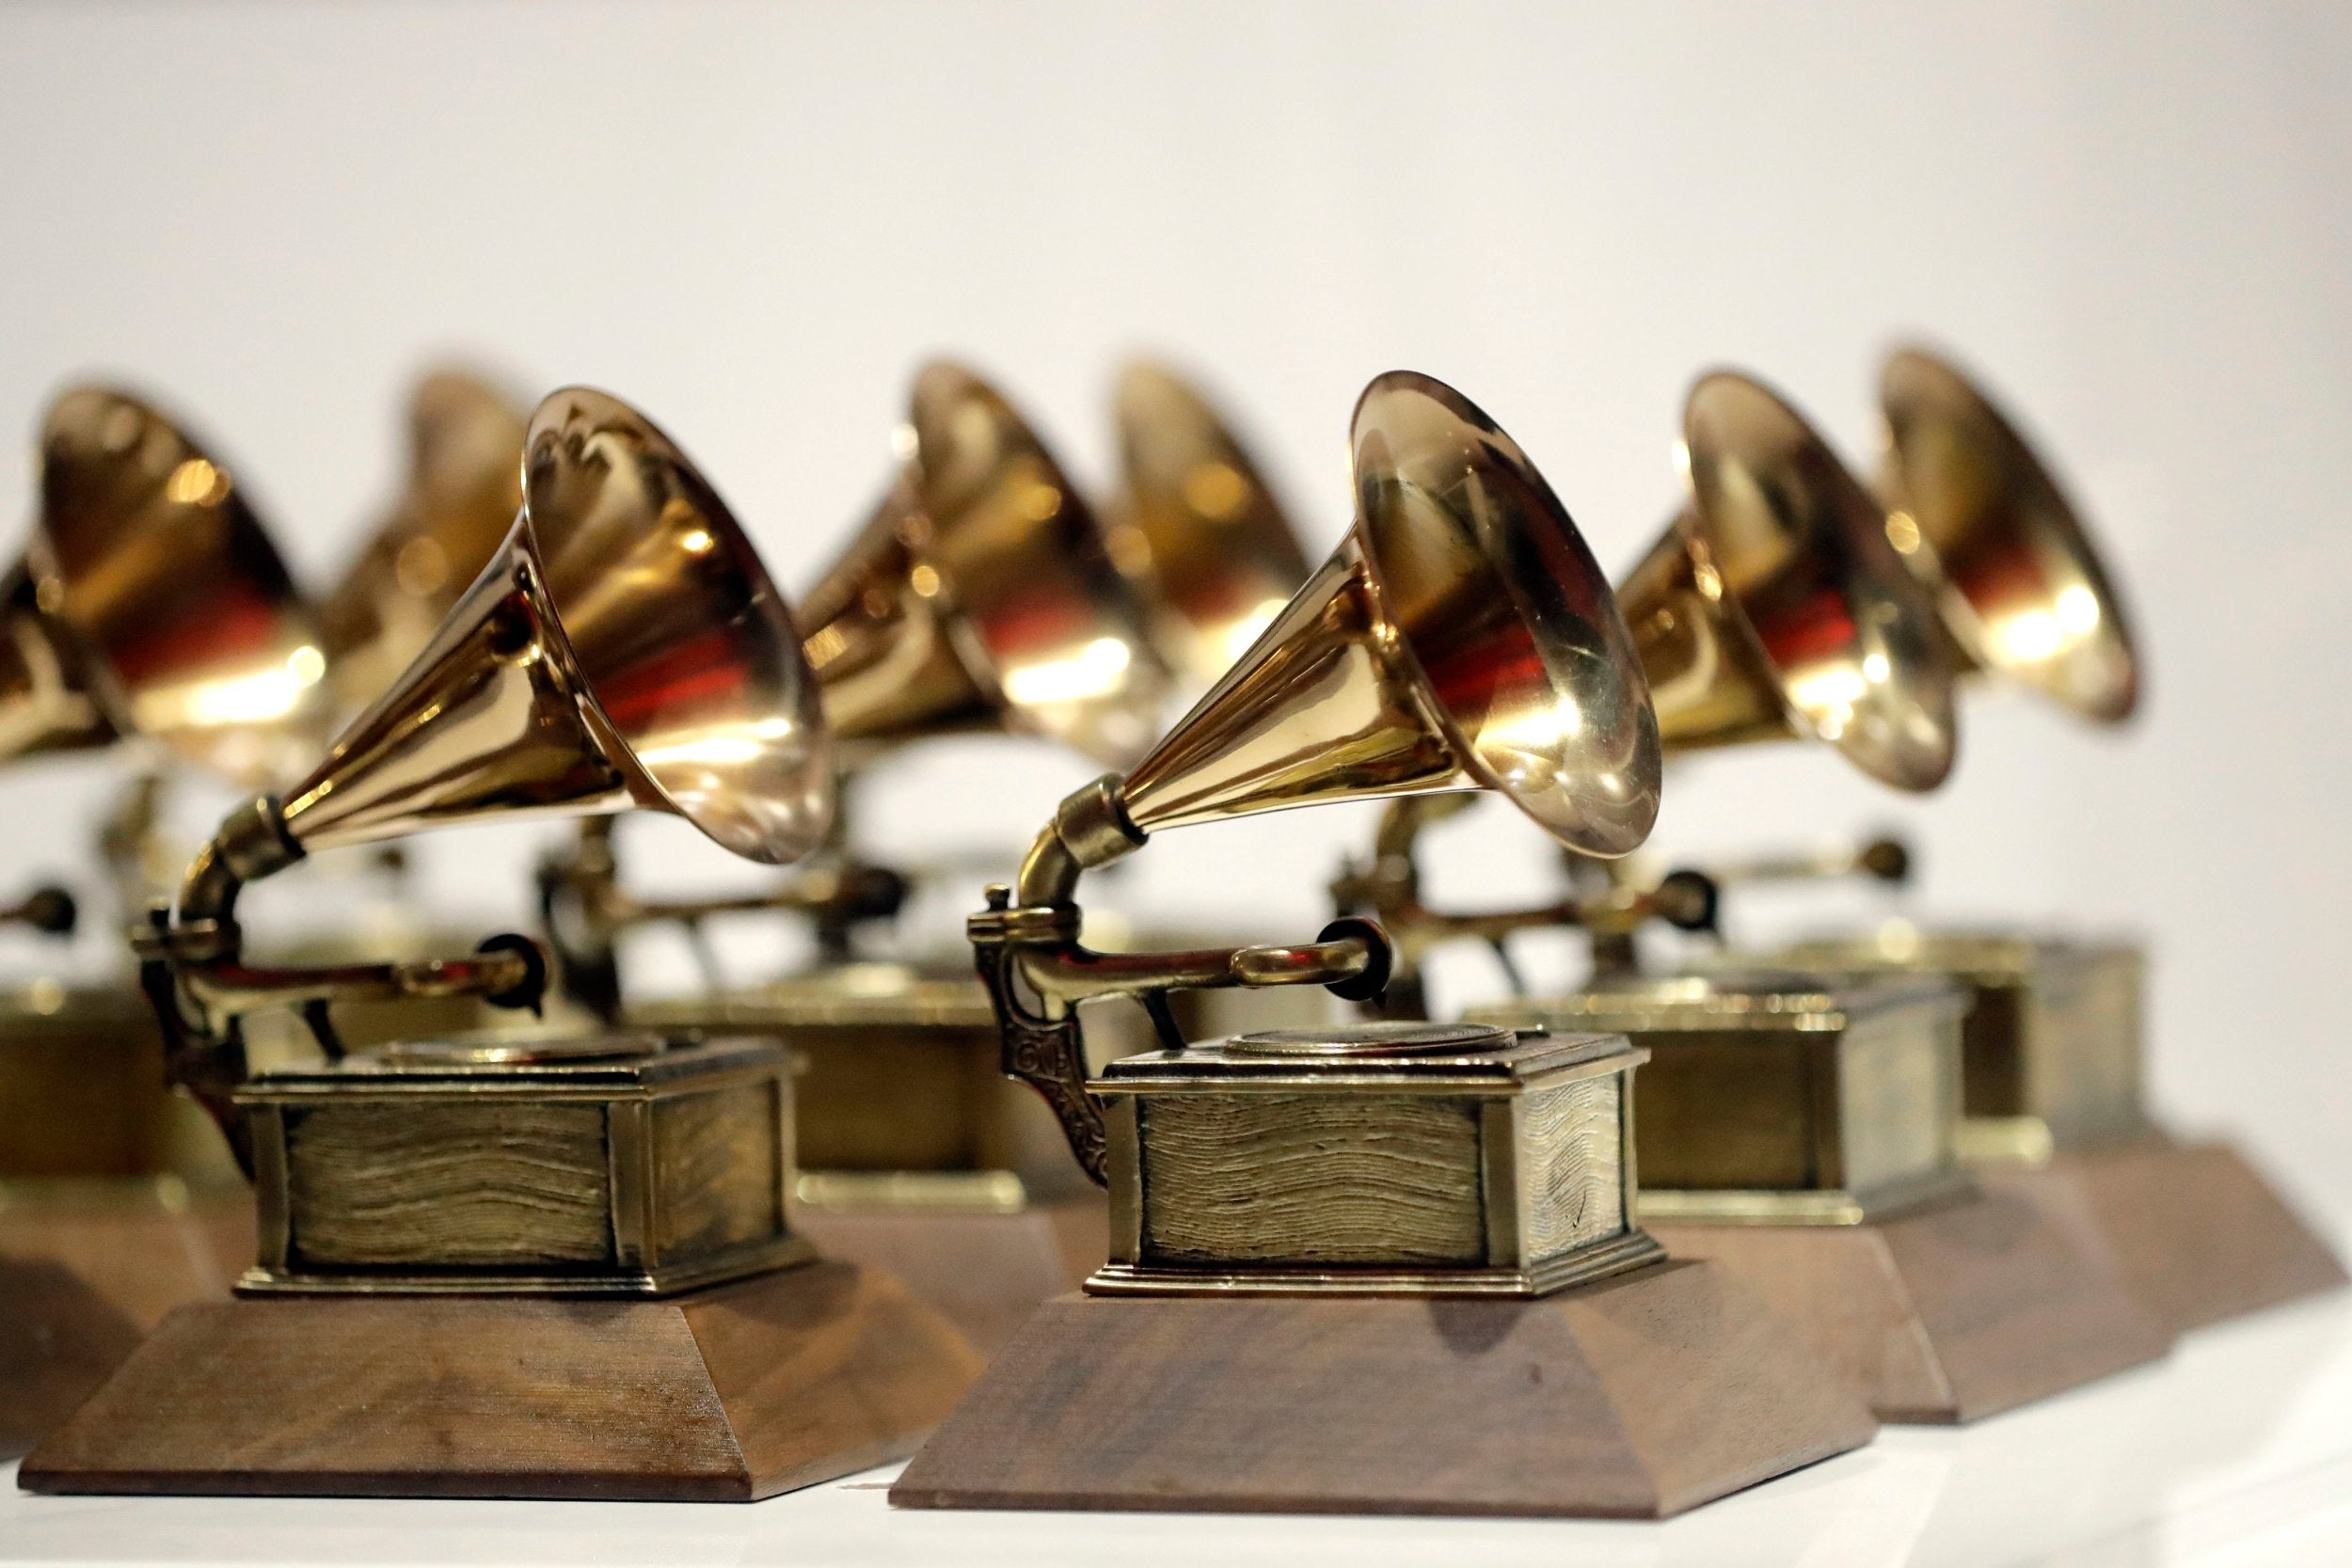 Grammy nominations 2020: What time are nominees announced, how can I watch it live and who's most likely to get nominated?